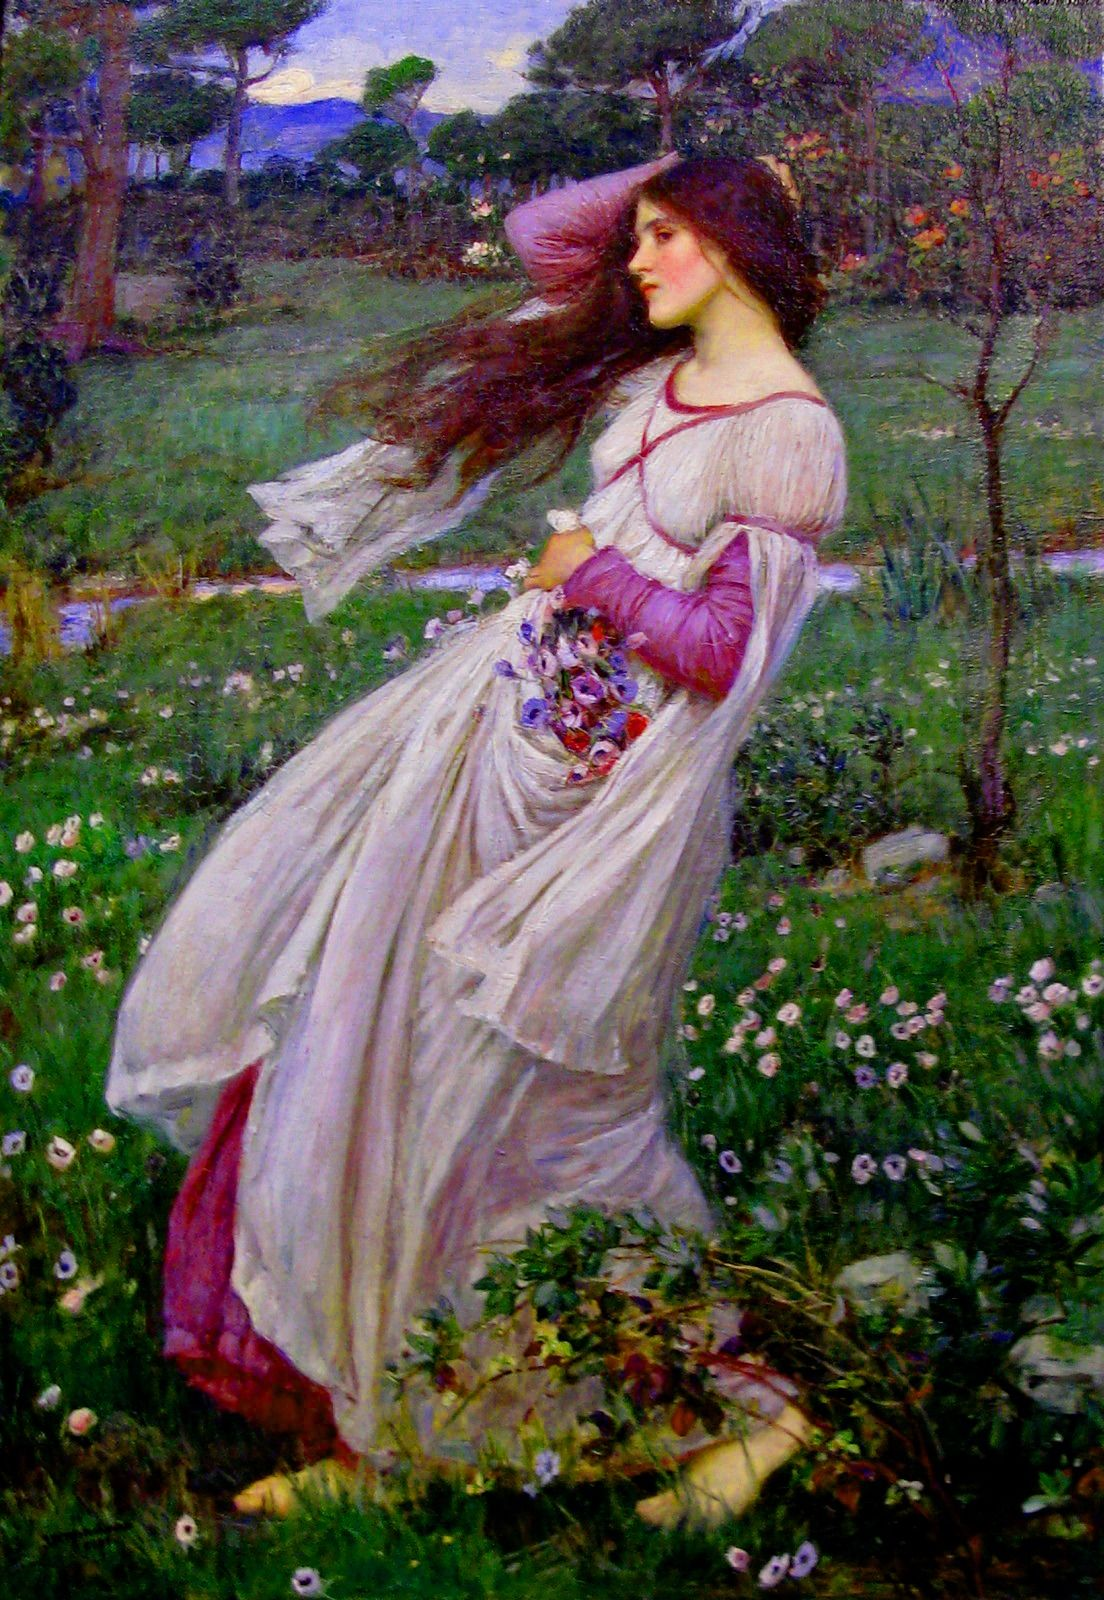 Pittura Preraffaellita Inglese John William Waterhouse 1903 Windflowers Preraffaelliti Arte